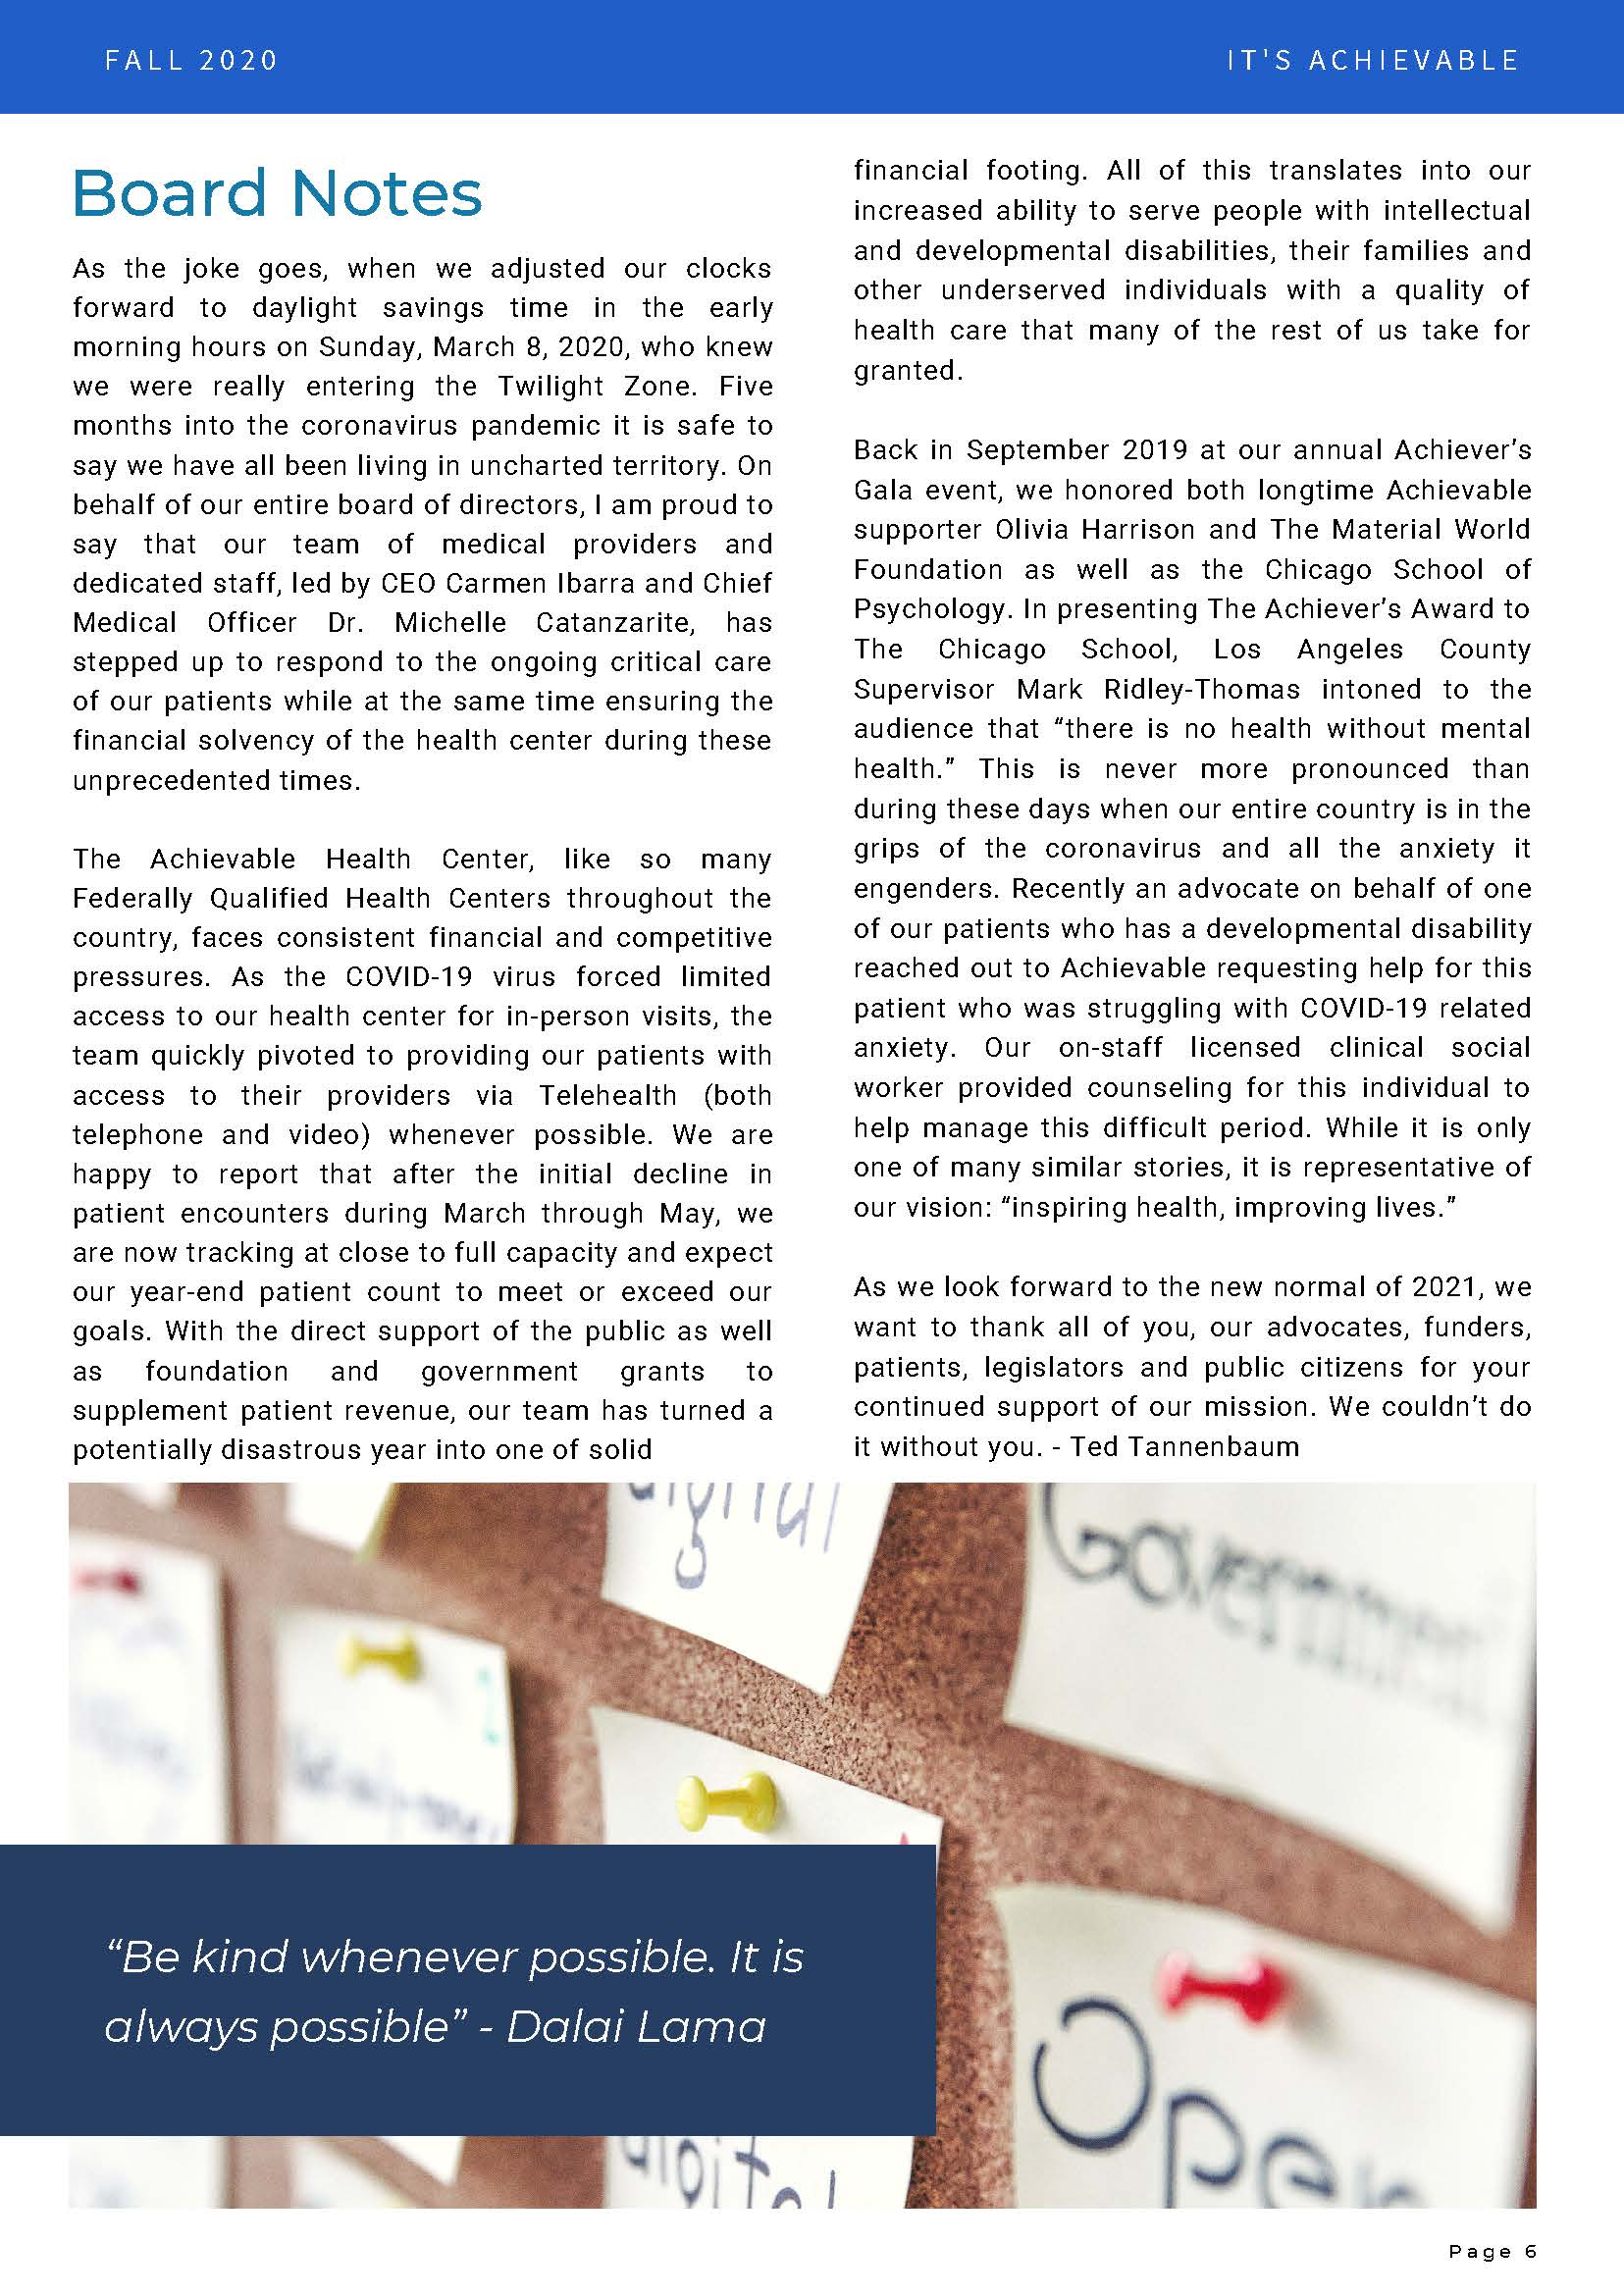 Copy of Achievable Fall 2020 Newsletter FINAL (1)_Page_6